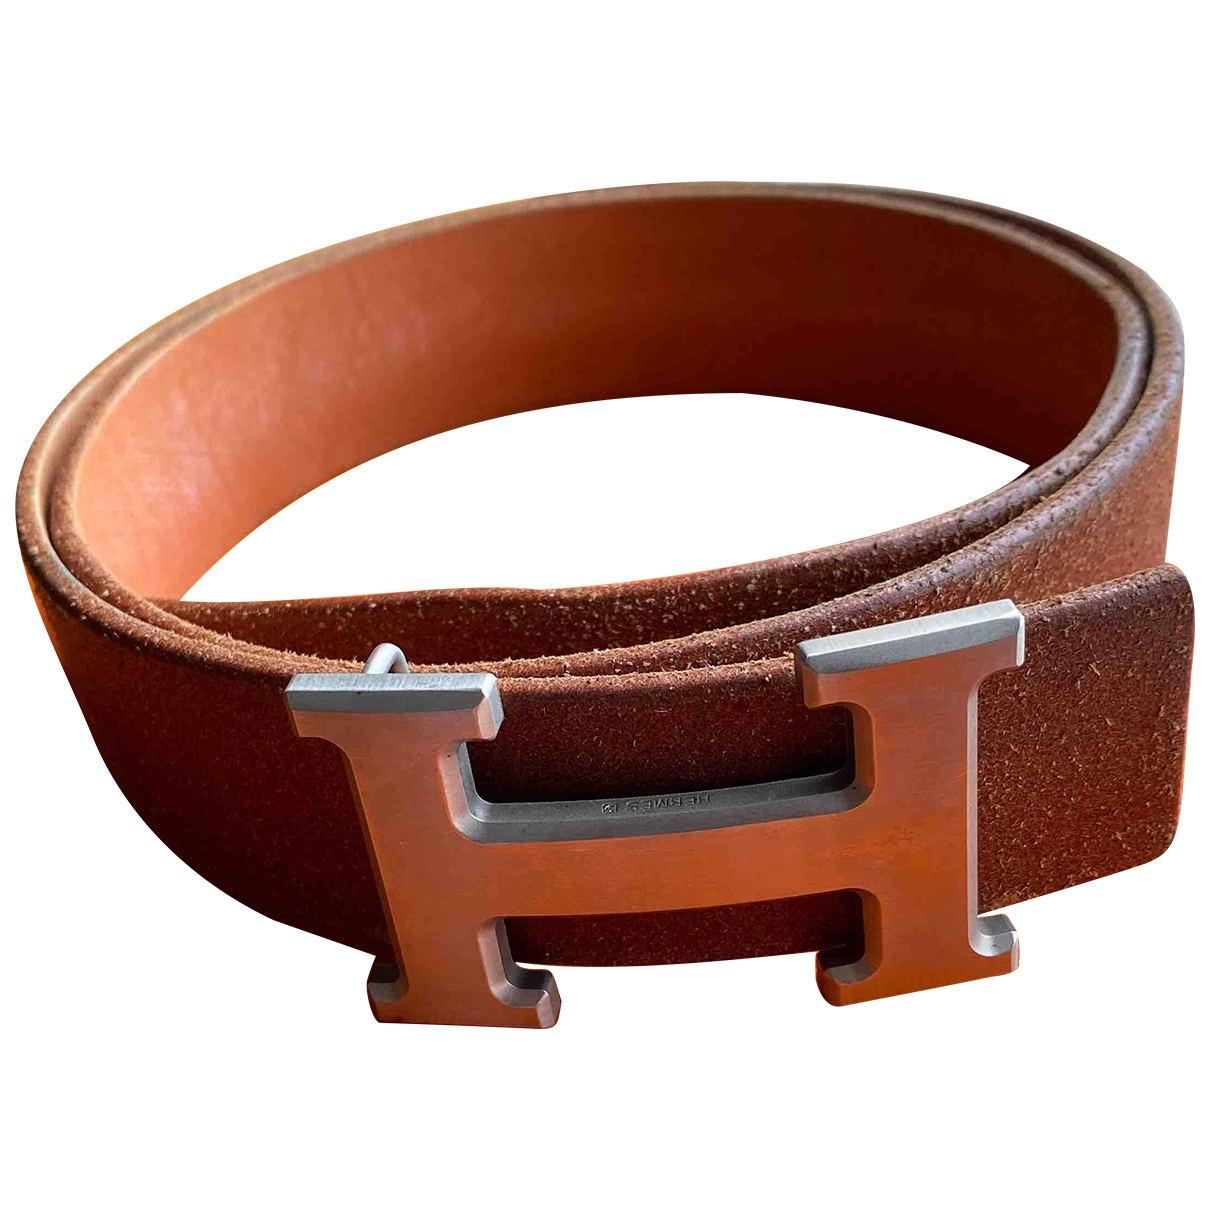 Hermès H Leather belt for Women 75 cm